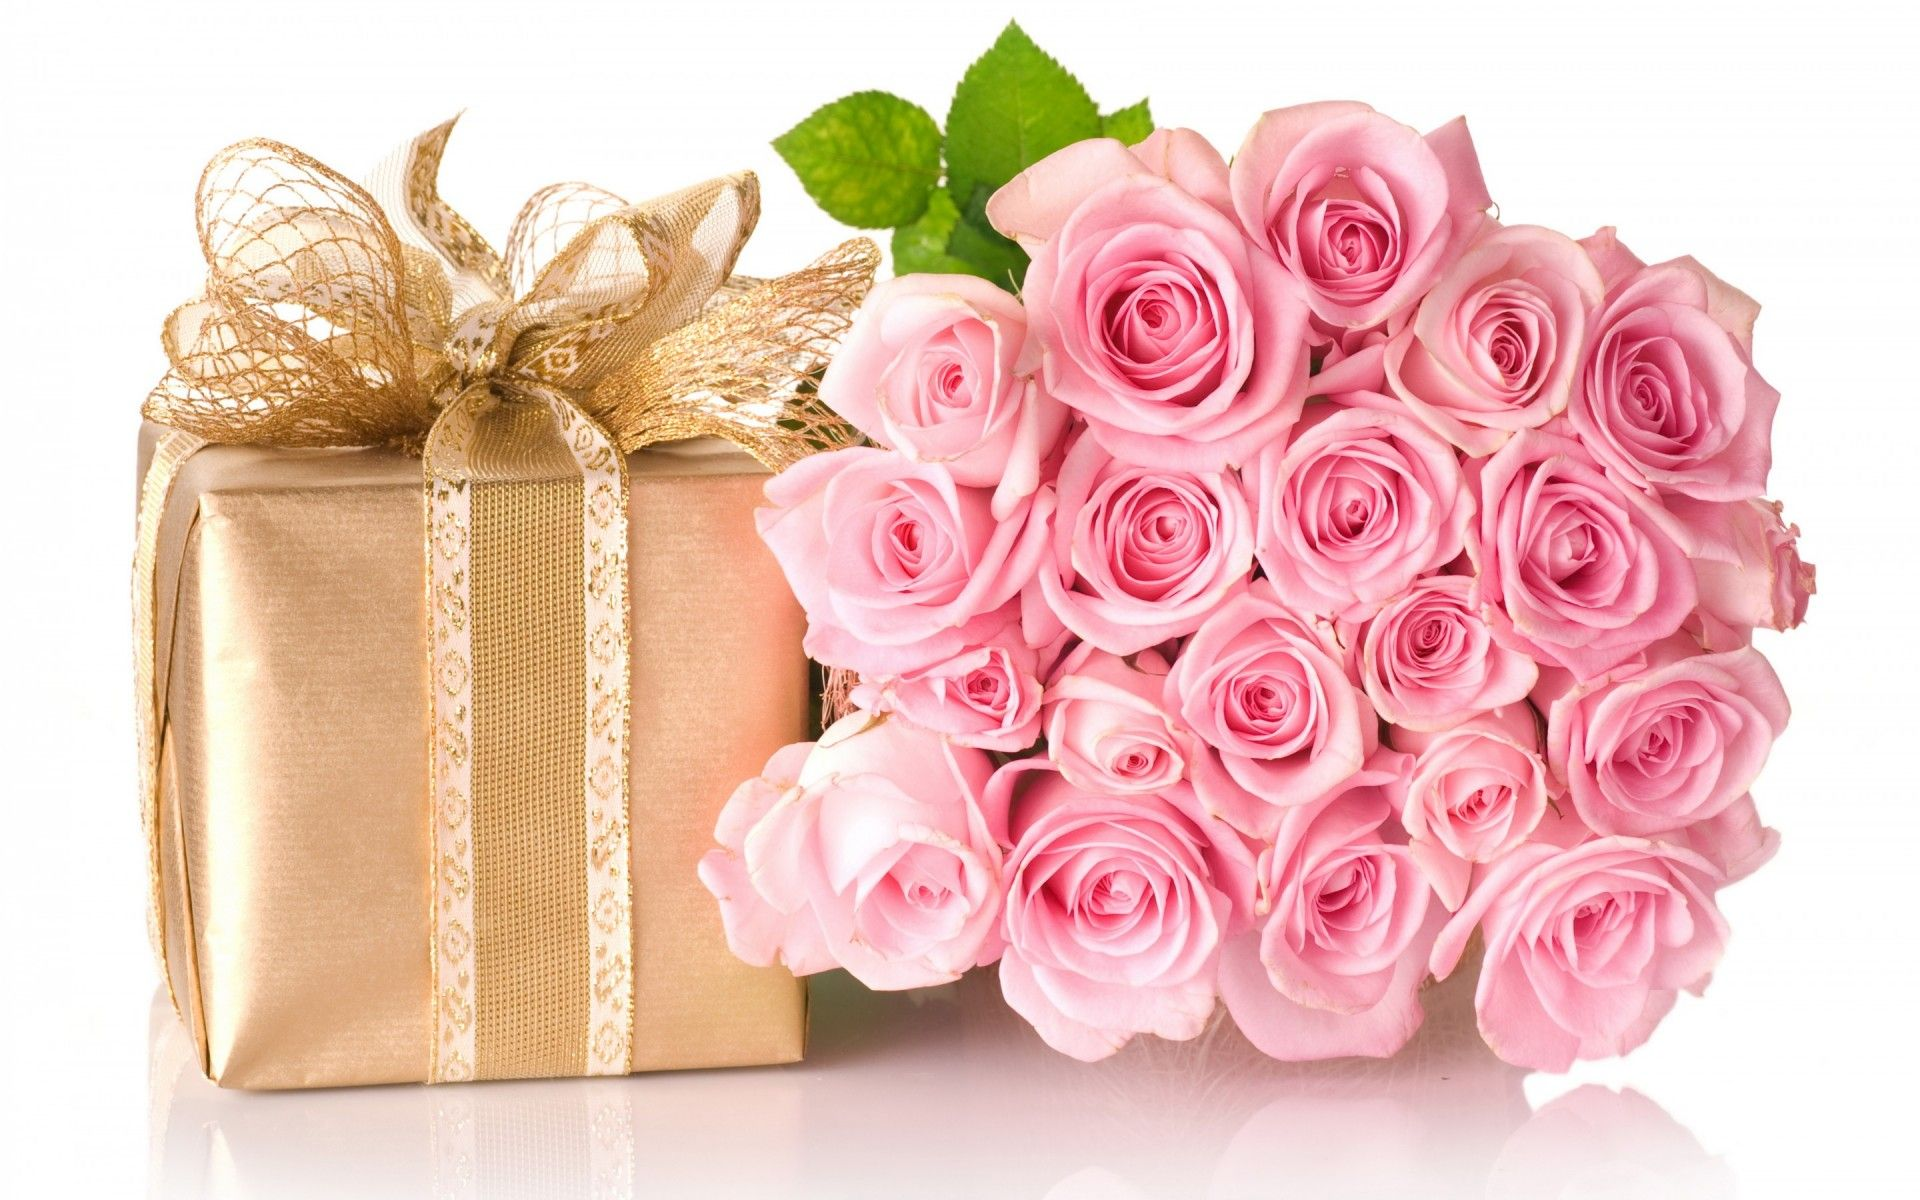 Happy Birthday Roses Bouquet WallPaper HD httpimashoncomw